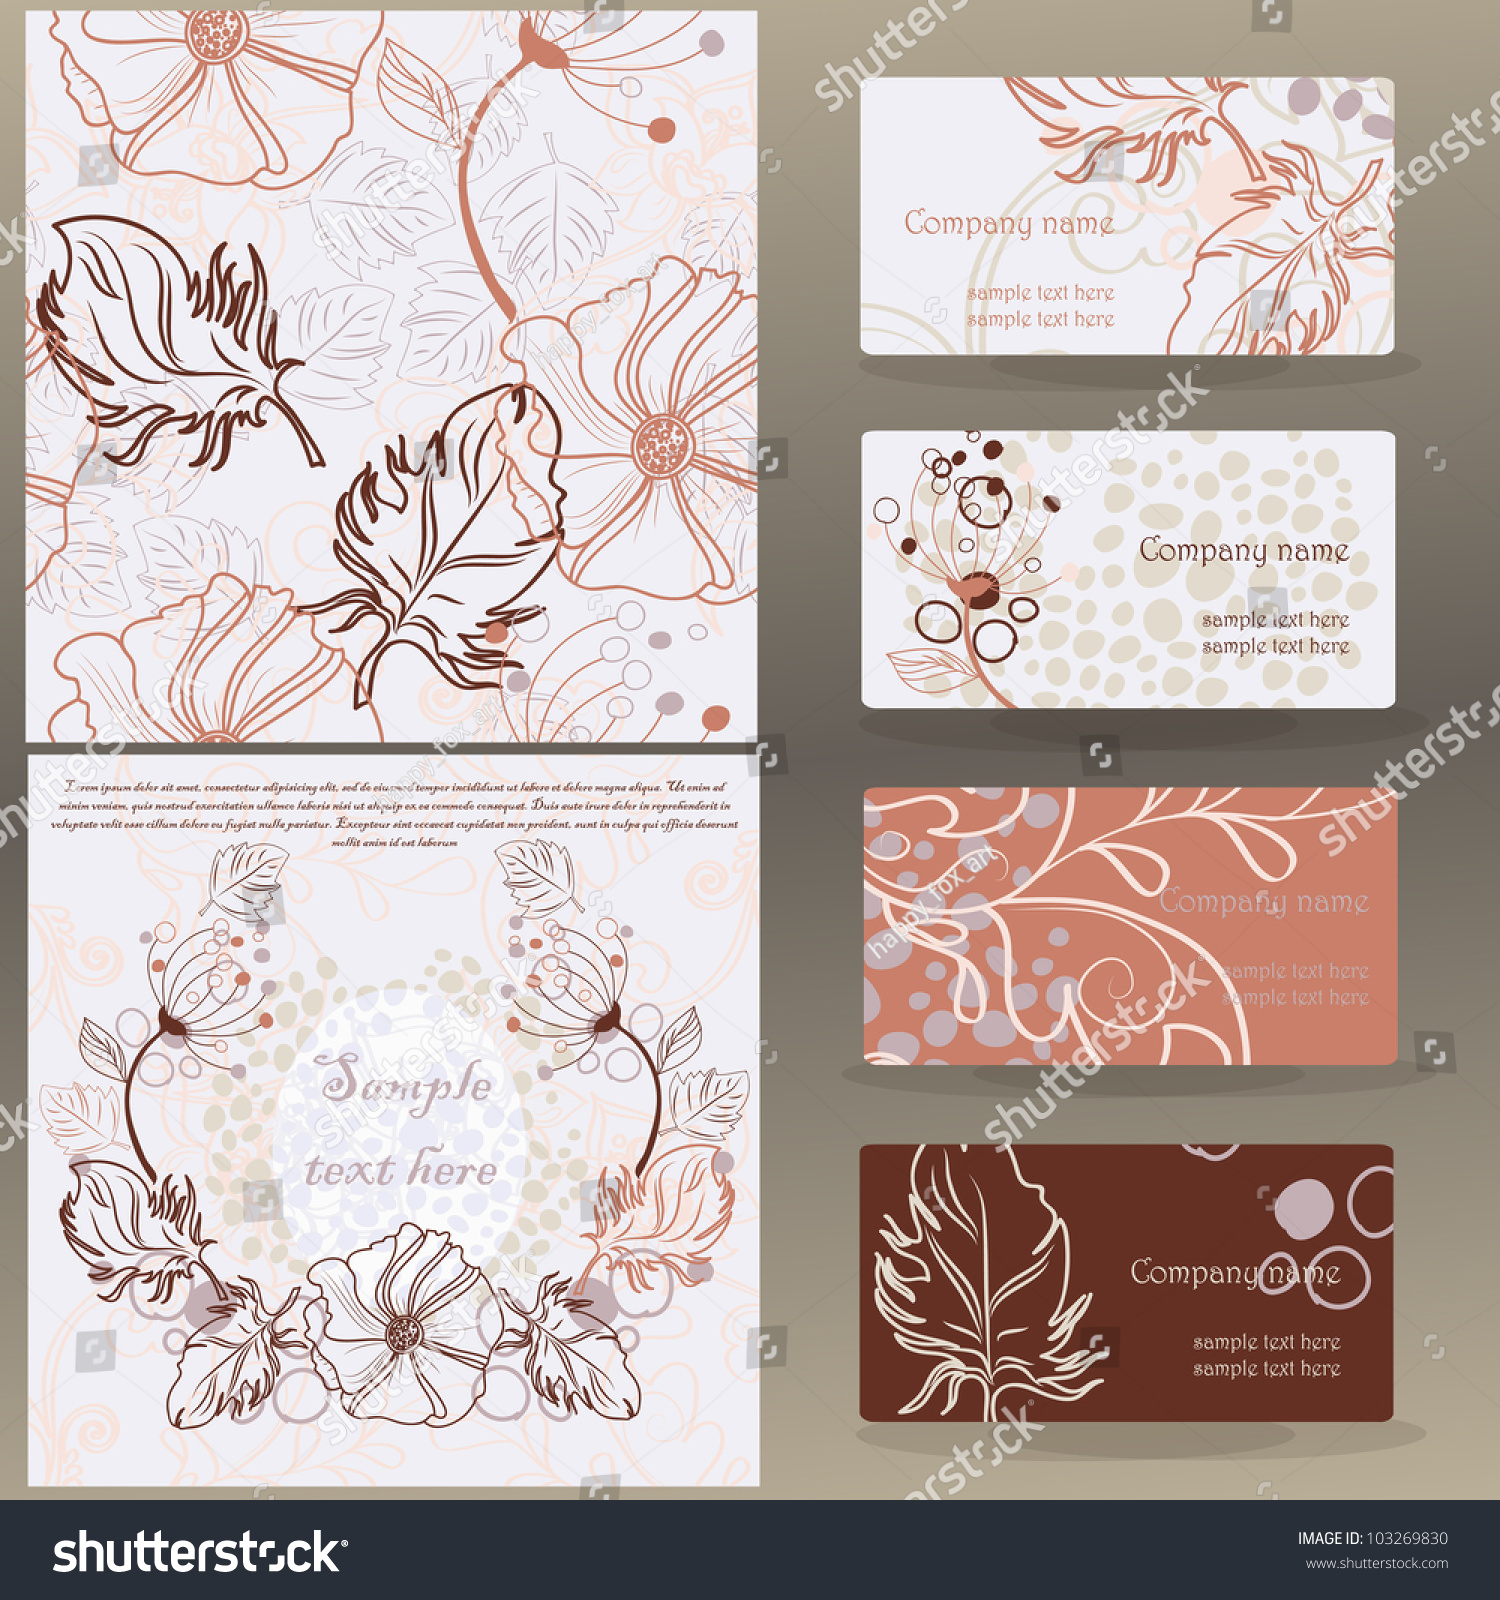 Set Vector Floral Designs Business Cards Stock Vector 103269830 ...